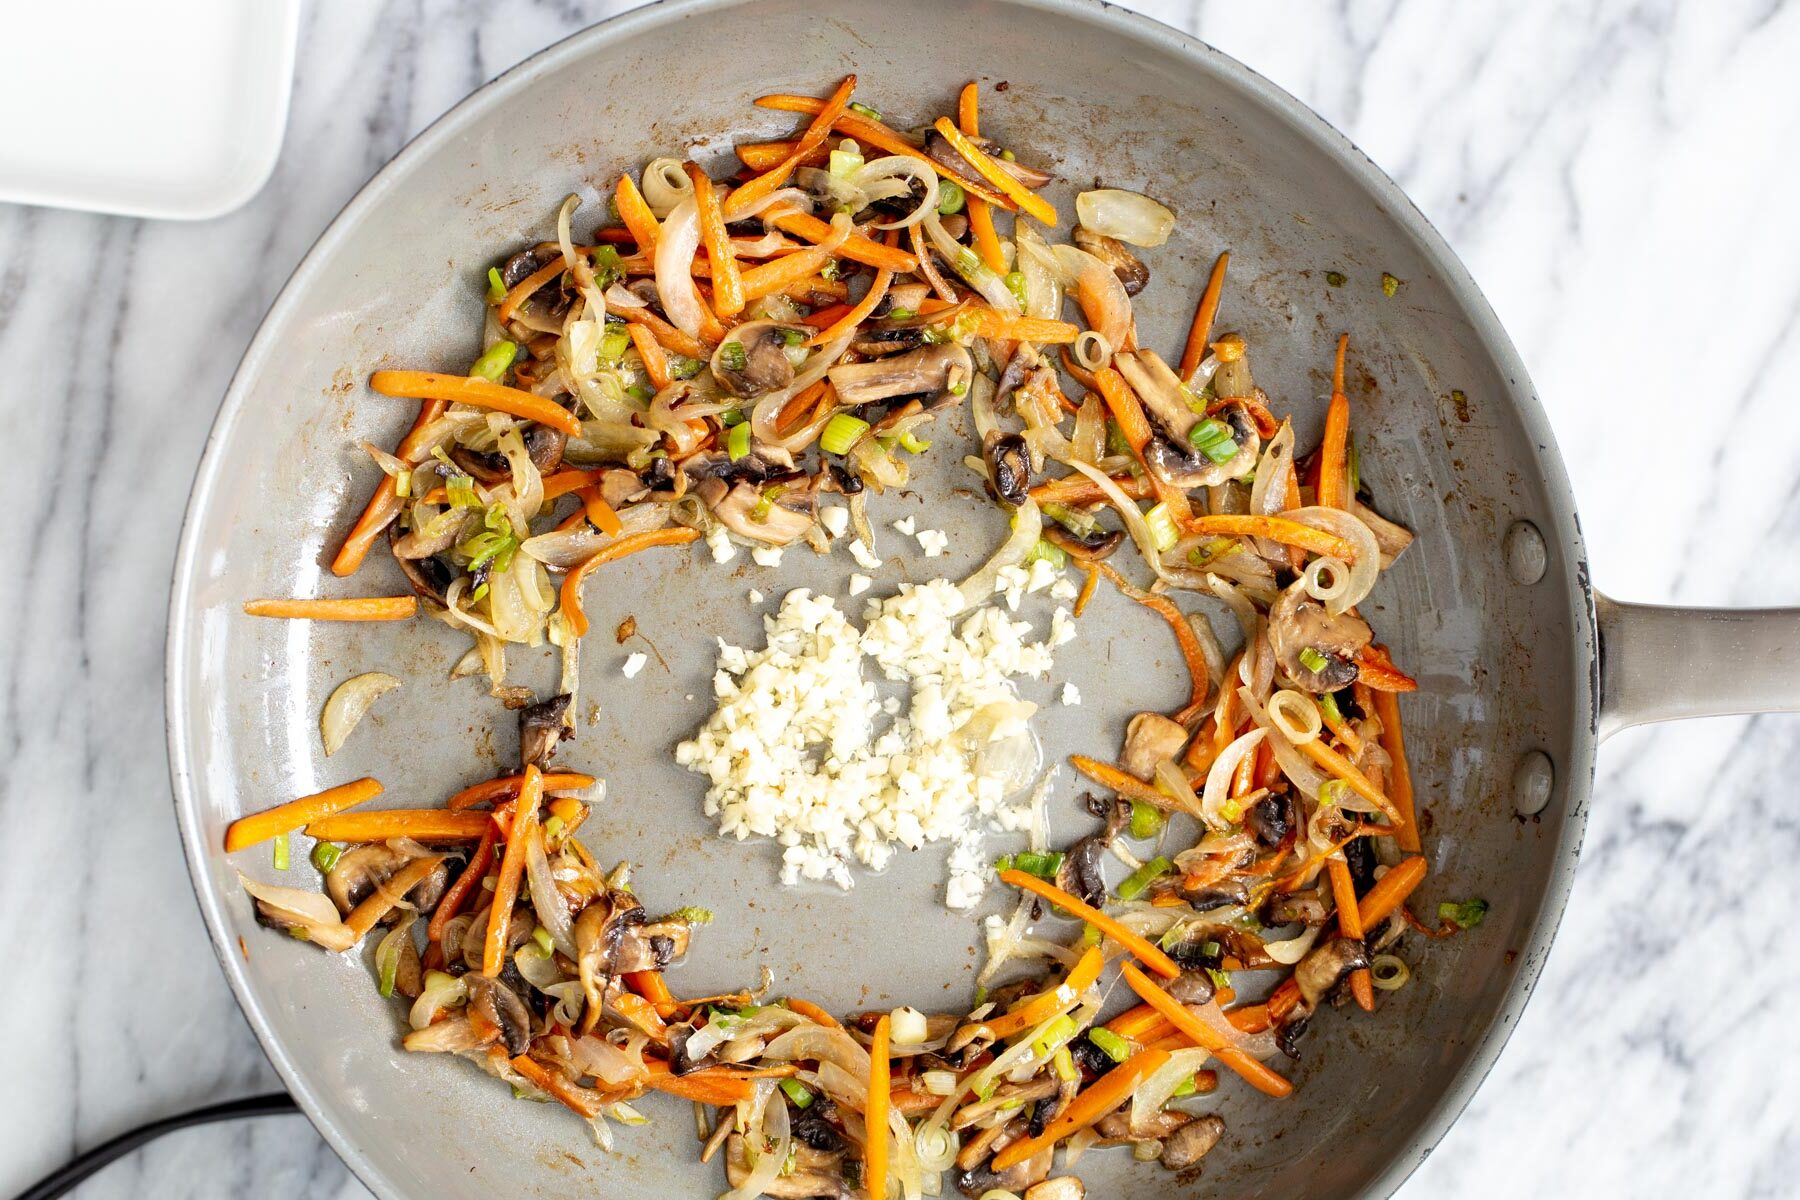 finely sliced veggies stir-frying with garlic in a saucepan